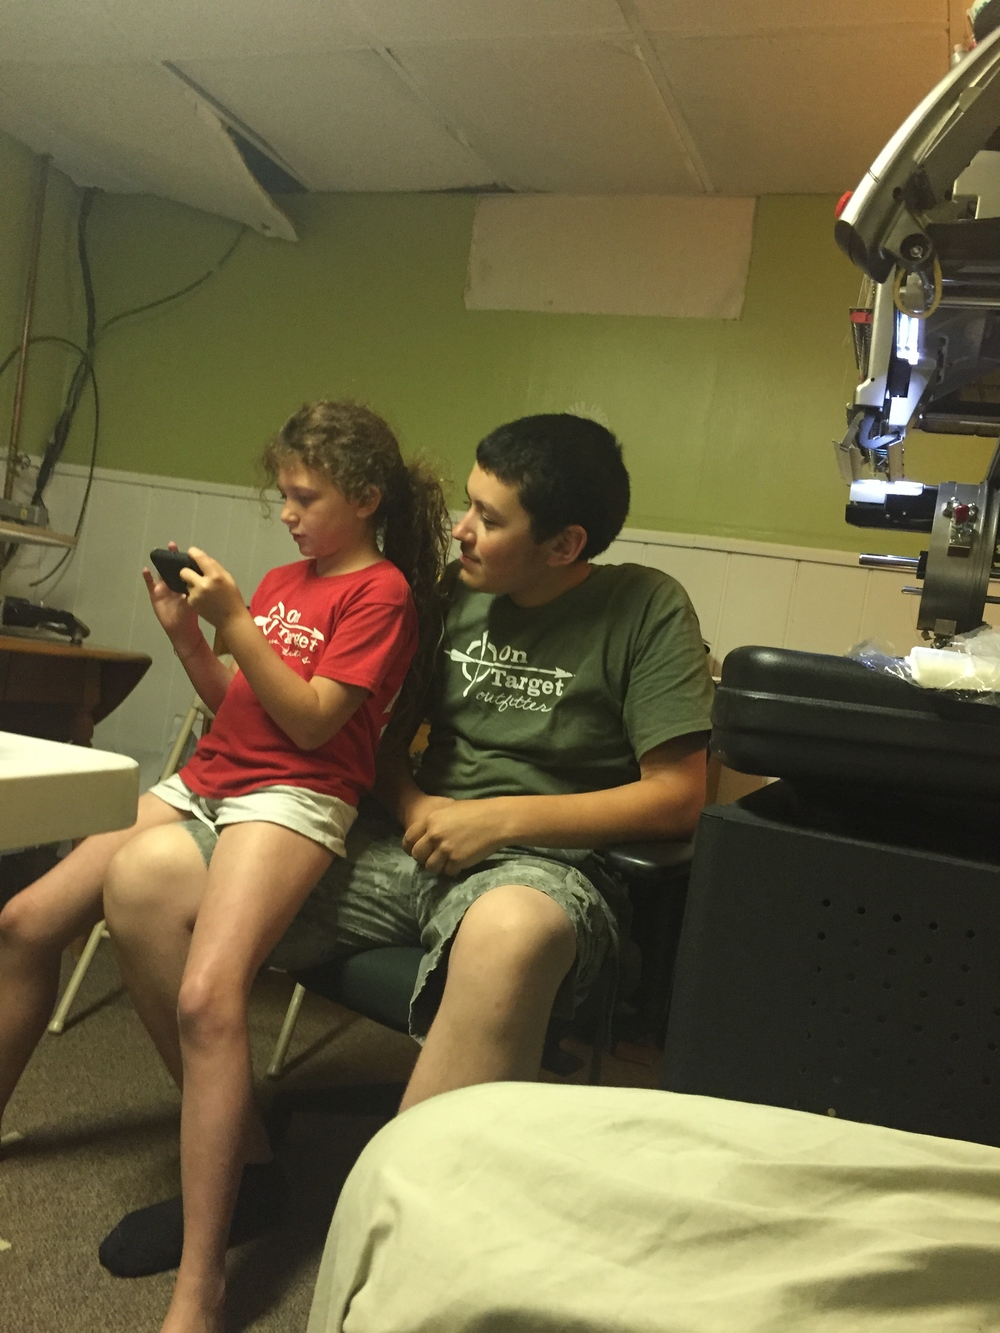 """Clayton with his """"sister""""Eliza making On Target shirts at the Isgro's house!"""